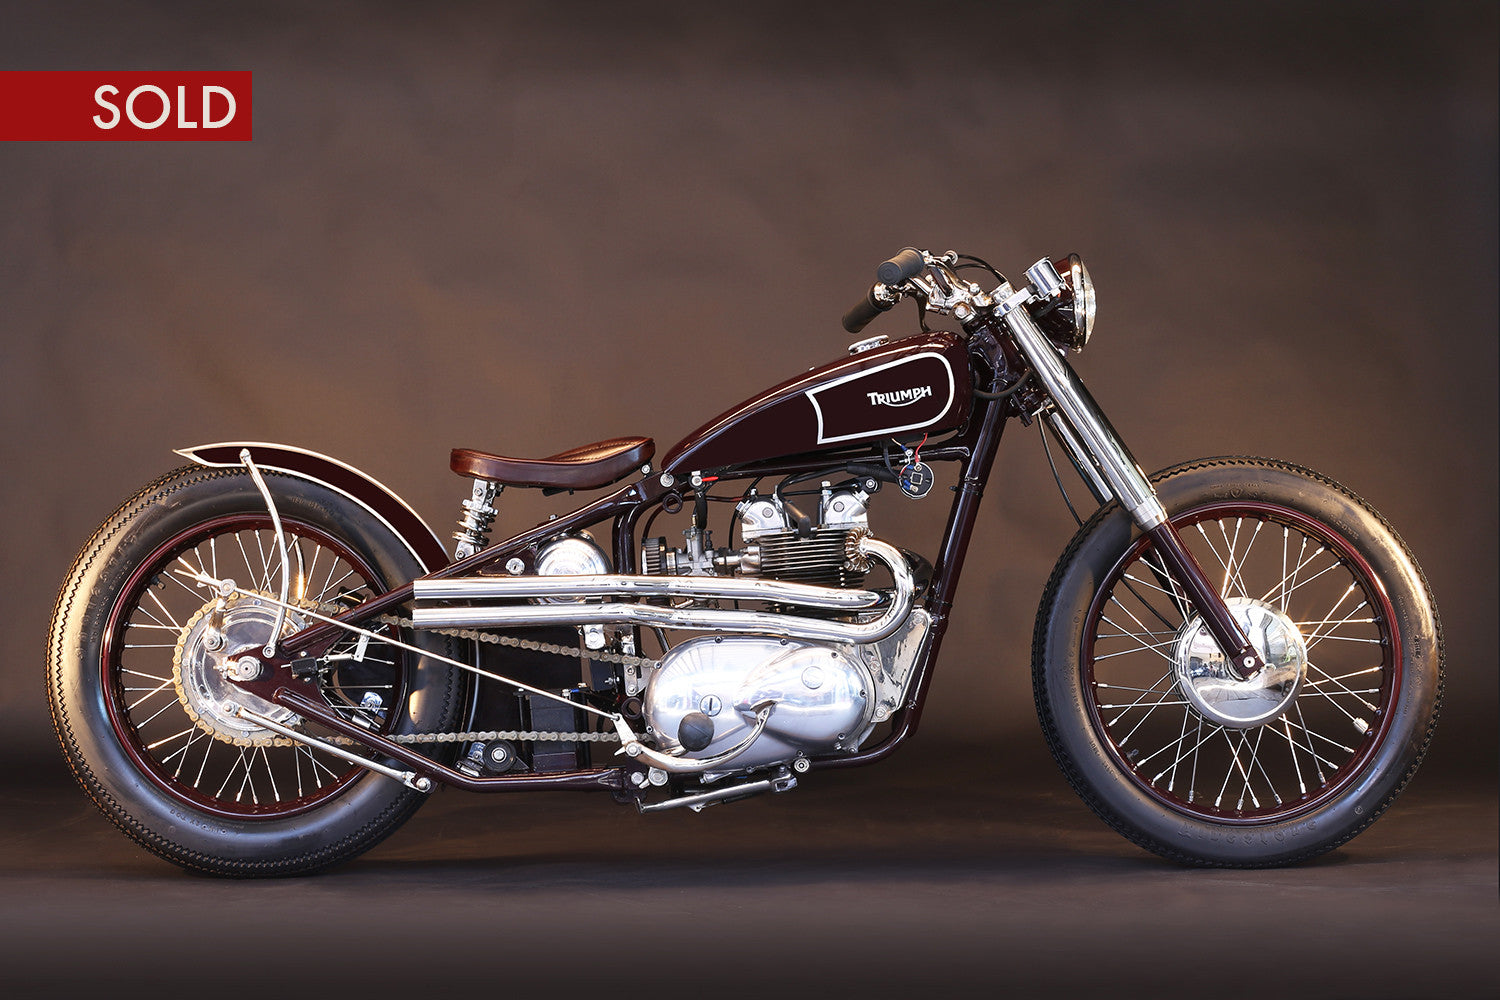 1968 Triumph Bobber 500Cc T100 - Heroes Motorcycles